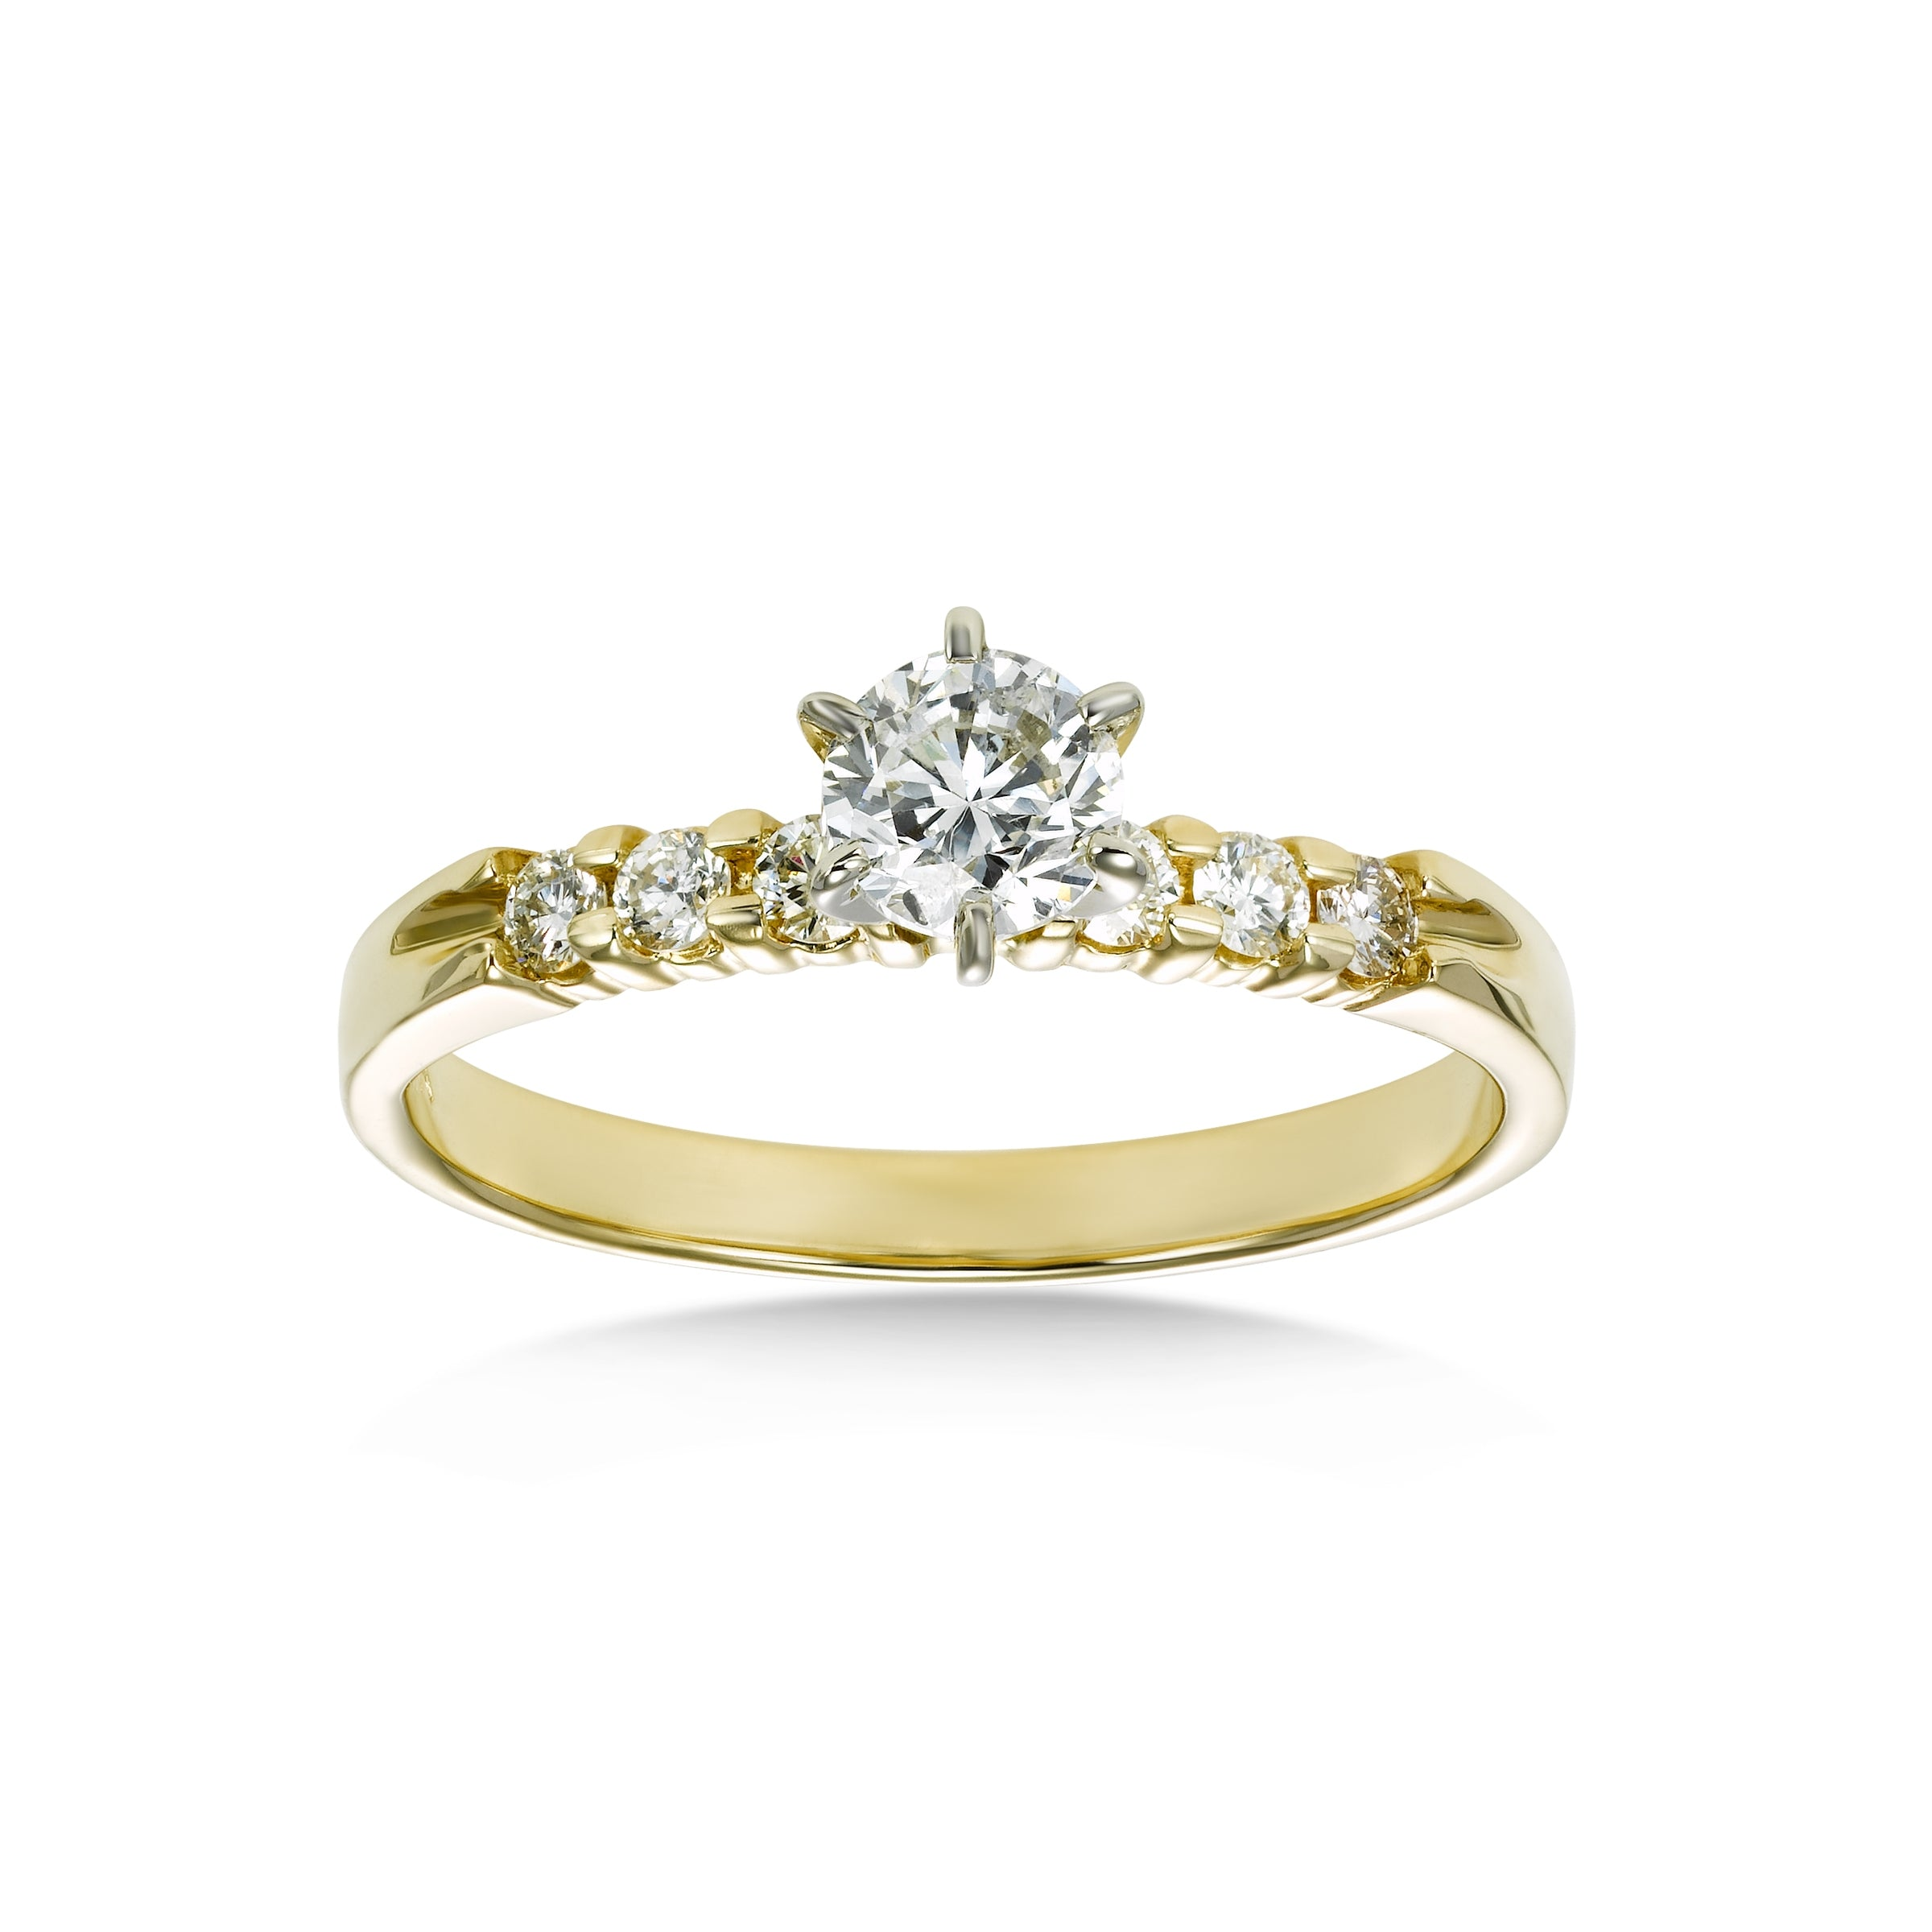 Mutual Prong Style Engagement Ring, .44 Carat Center, 14 Karat Gold